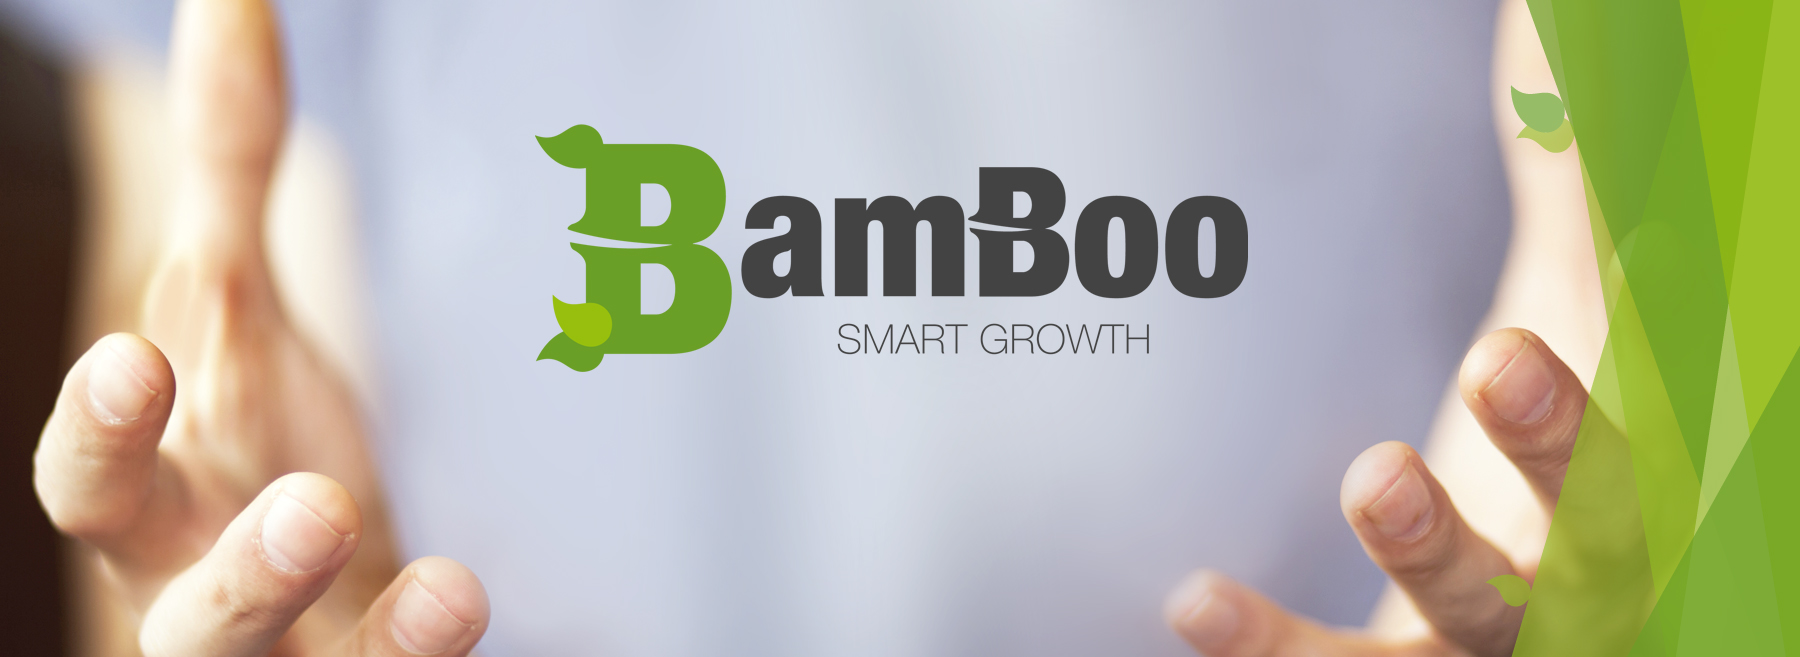 BamBoo Smart Growth